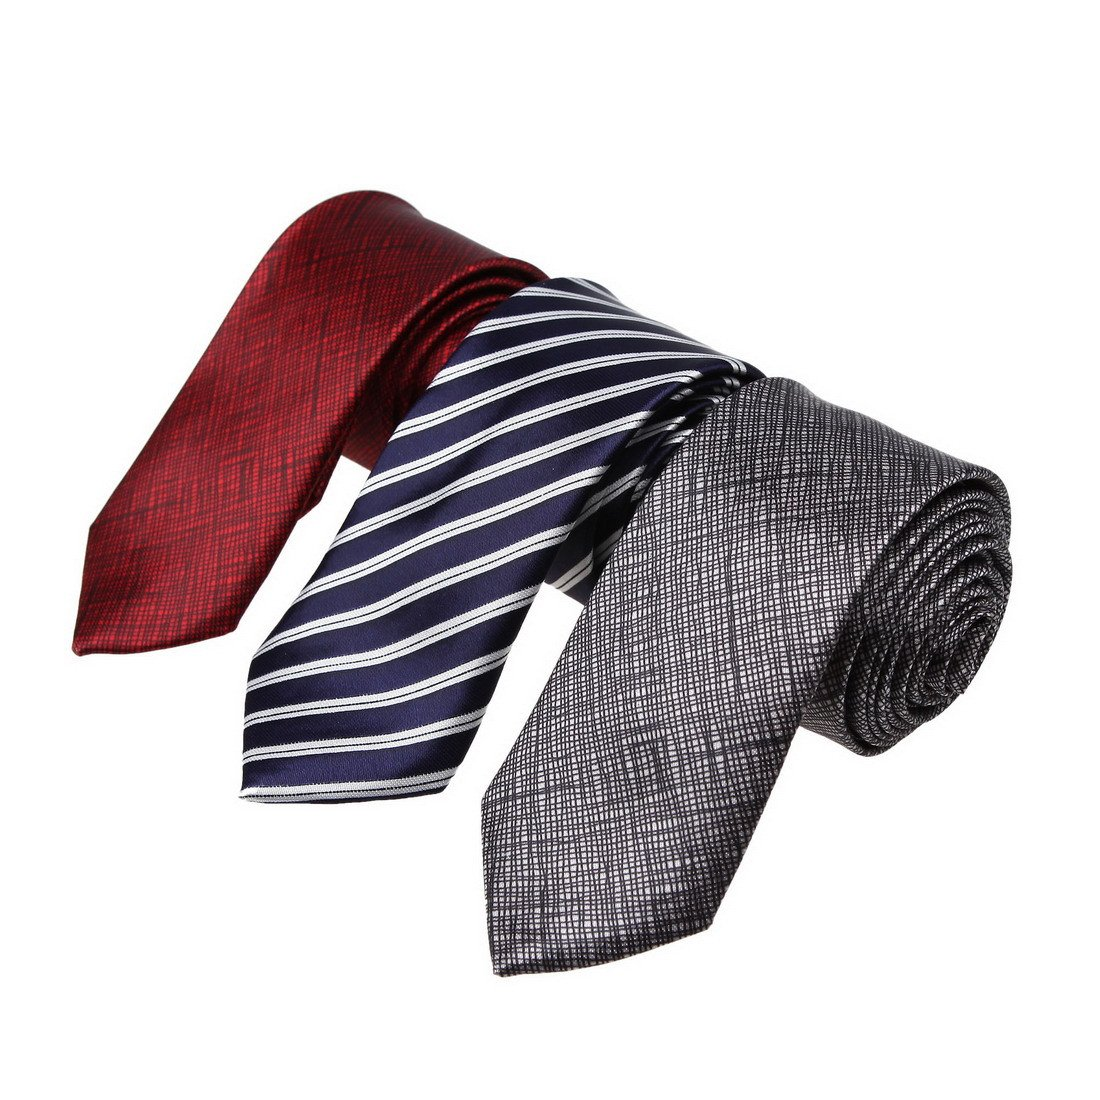 KT3066 Love Shopstyle Slim Ties Polyester Fantastic World 3 Pack Skinny Ties Set by Dan Smith